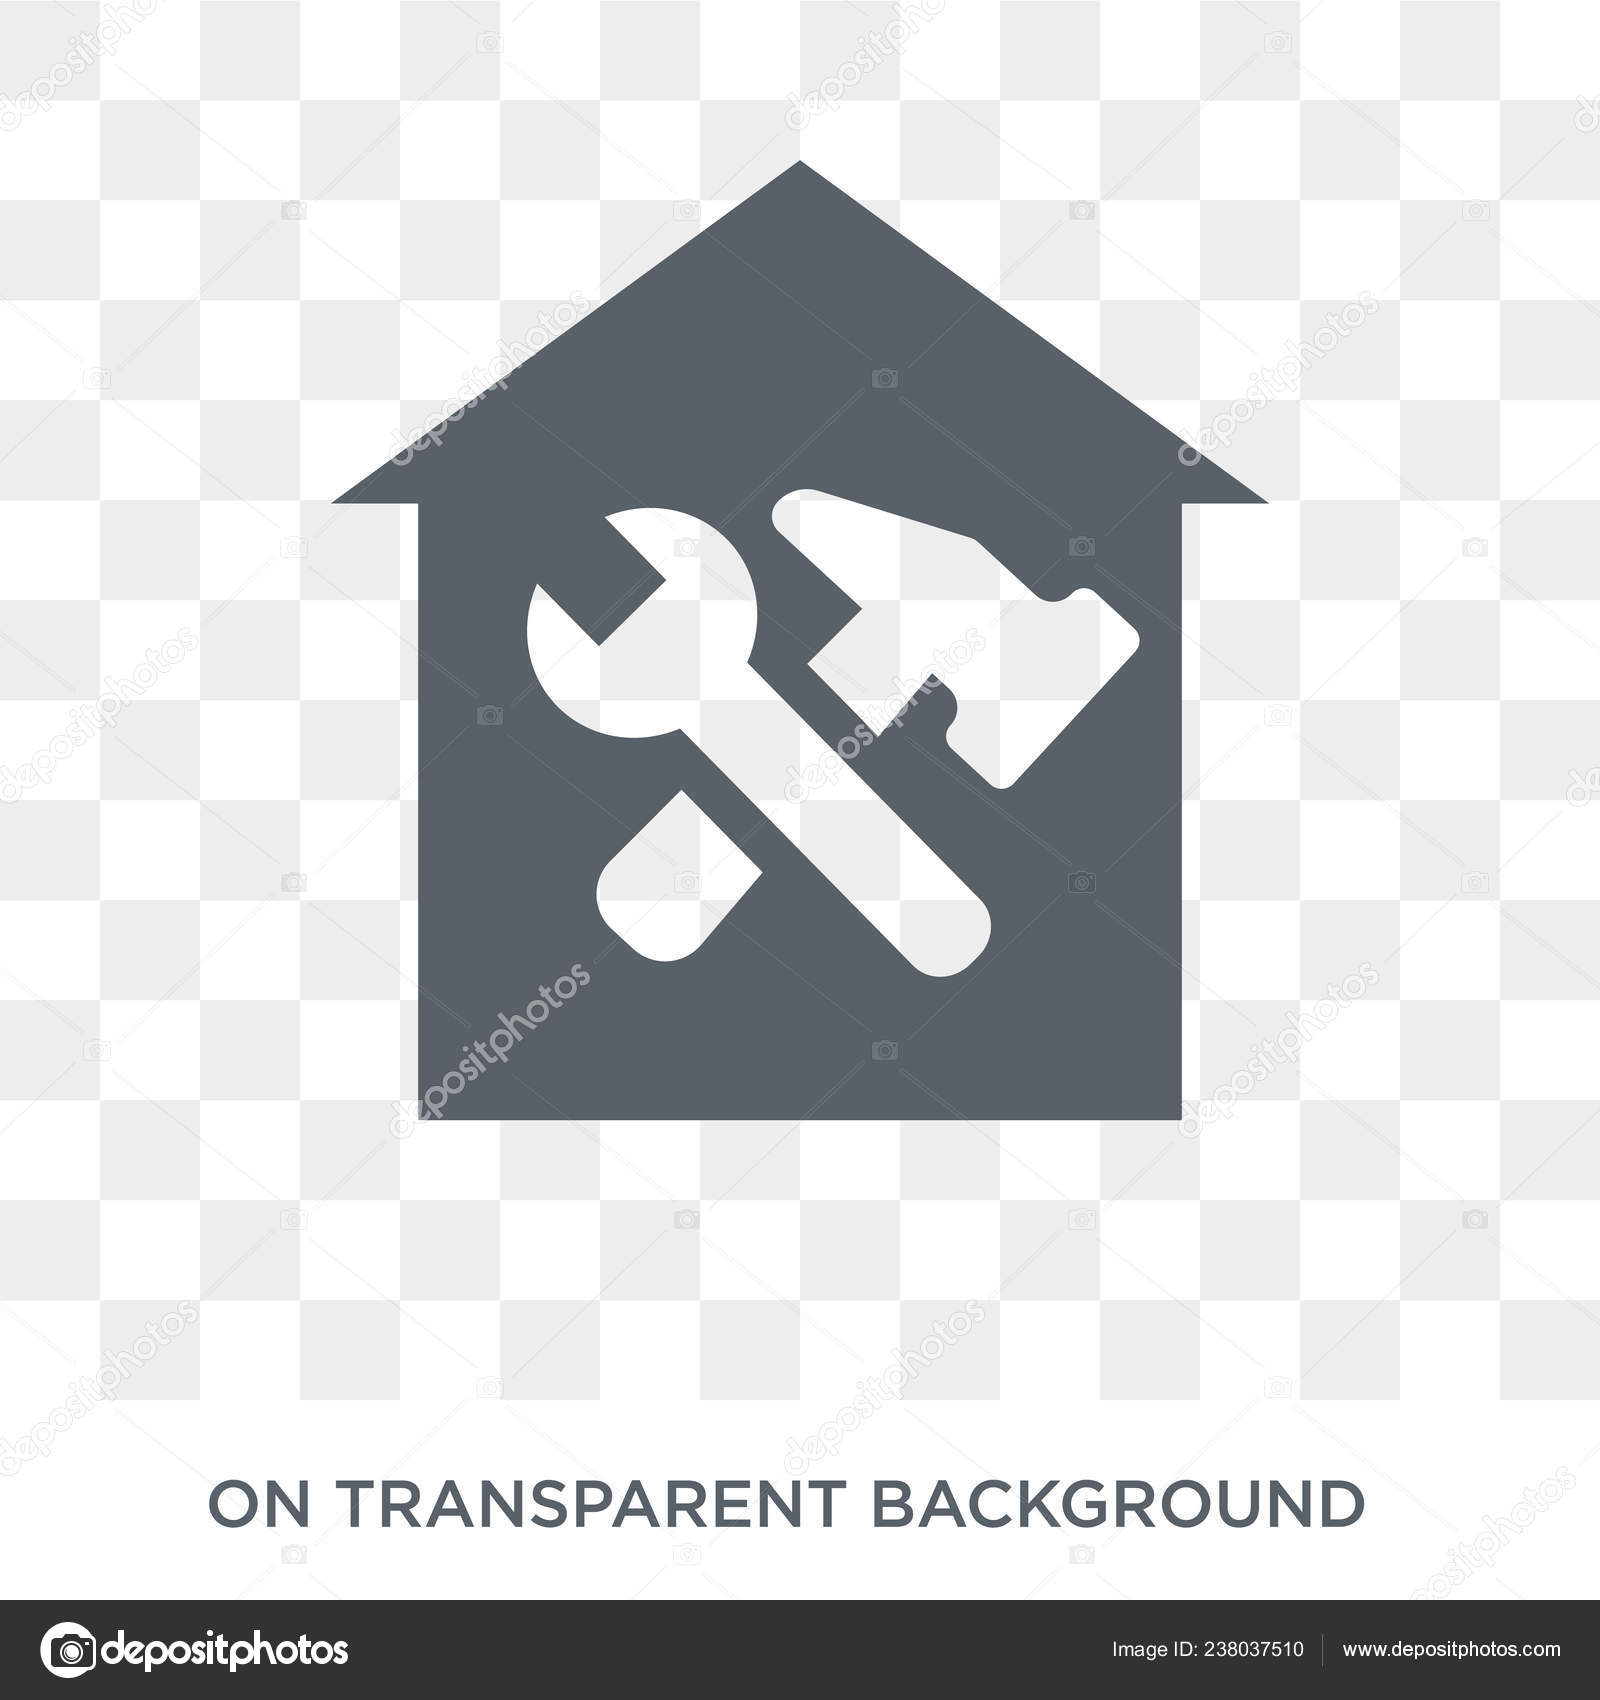 Home Repair Icon Home Repair Design Concept Construction ... on architecture icons, home construction artwork, home construction windows, home builder icon, home construction theme, home construction software, home construction photography, home construction clip art, home construction illustration, contractors icons, home logo construction, home construction tips, home construction united states, home construction data, remodeling icons, home construction cards, electrical icons, home construction quotes, home under construction, home construction wallpaper,